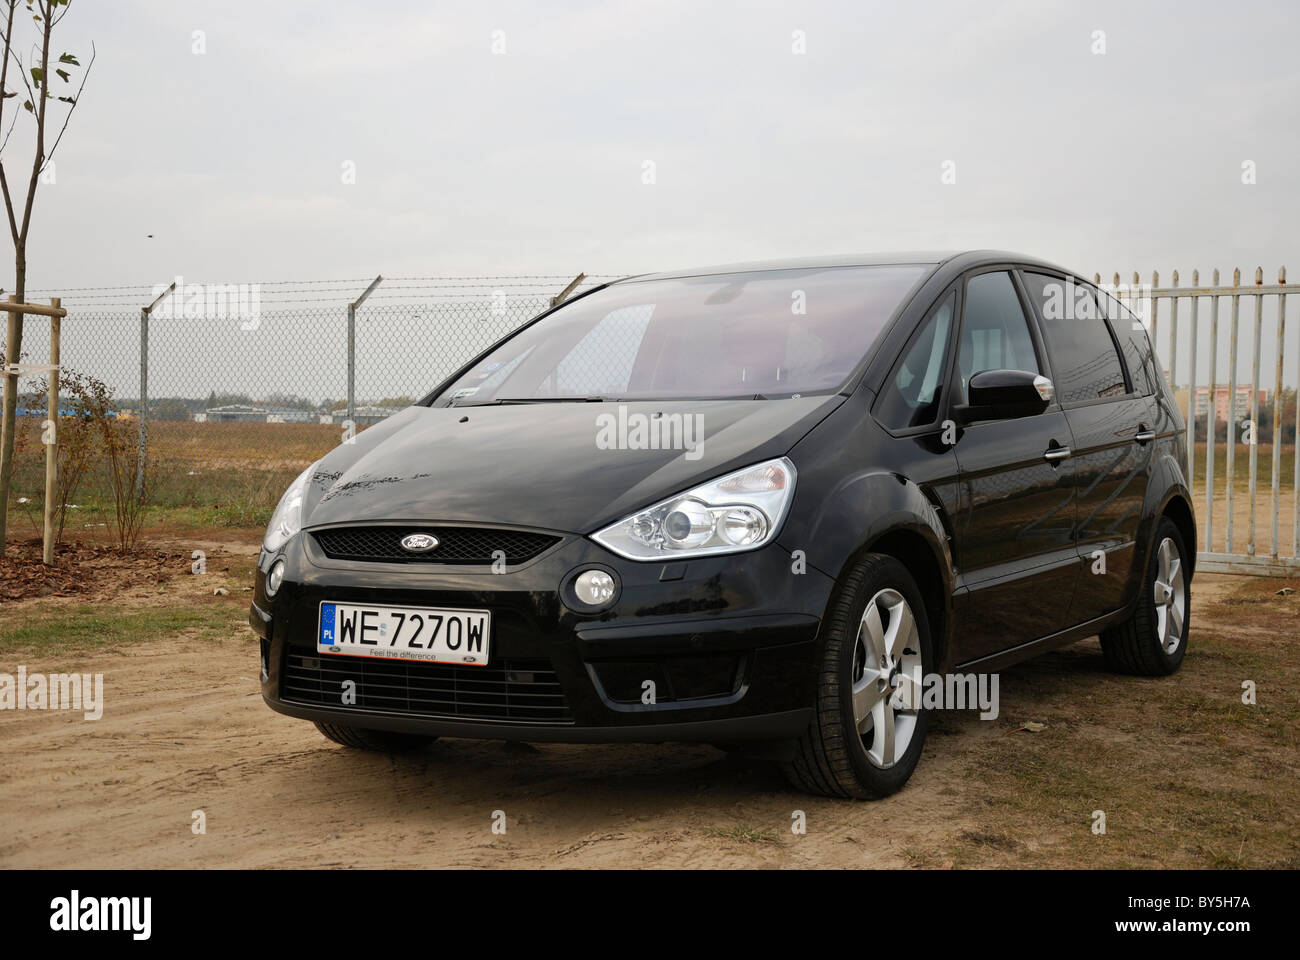 ford s max 2 0 tdci my 2006 black metallic five doors 5d stock photo royalty free image. Black Bedroom Furniture Sets. Home Design Ideas